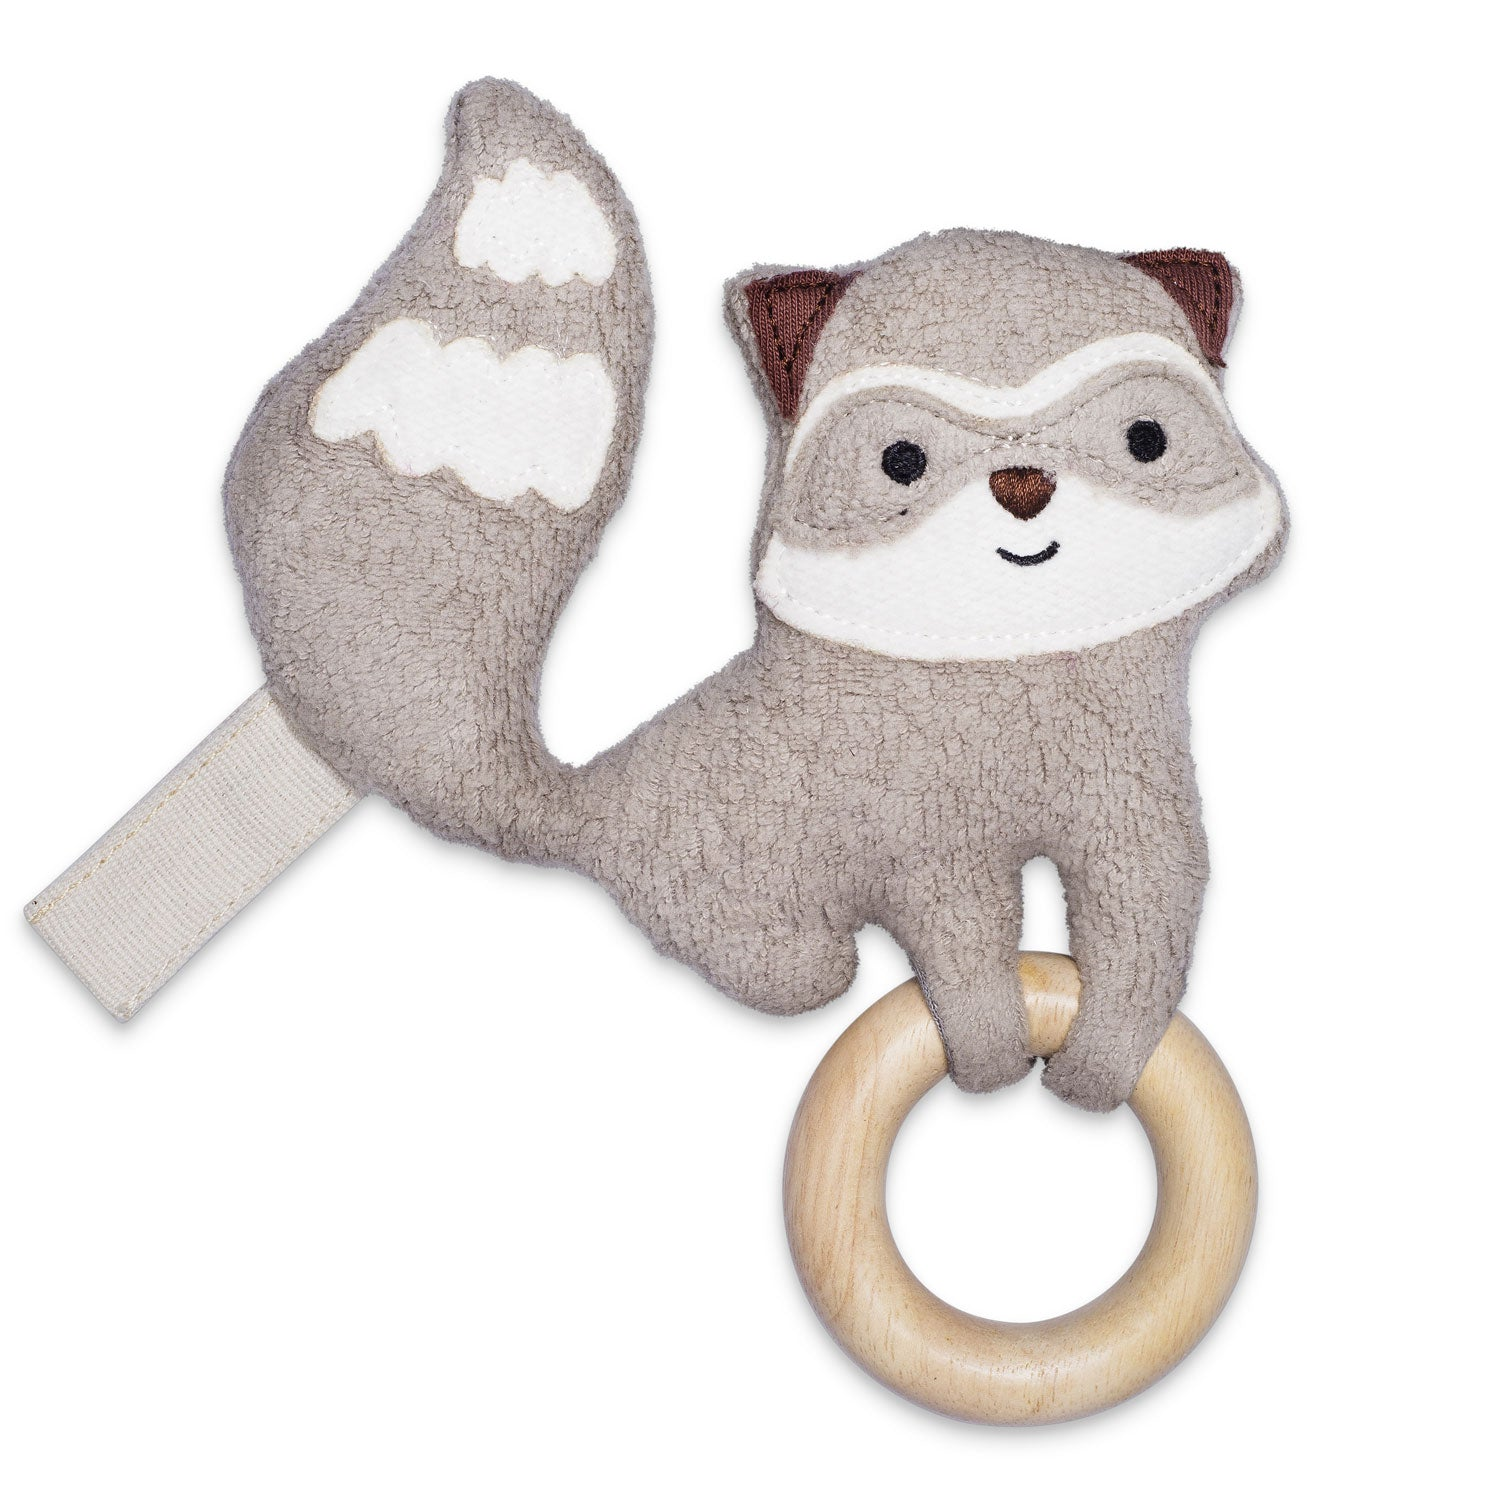 Apple Park Organic Cotton Plush Teething Toy Raccoon